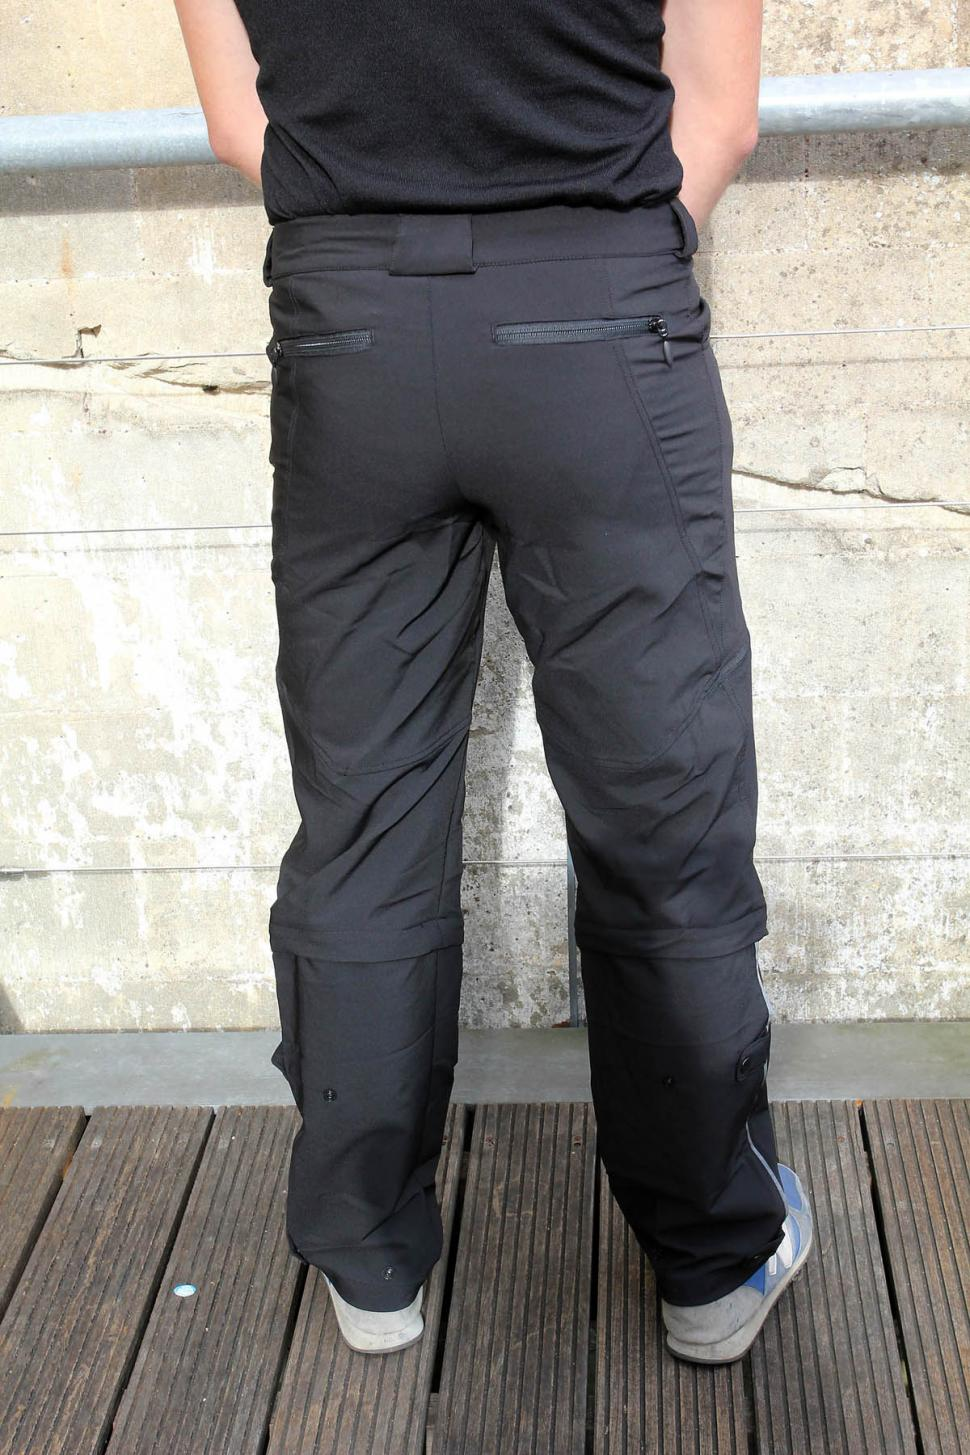 Showers Pass Hibrid Zip off pants rear